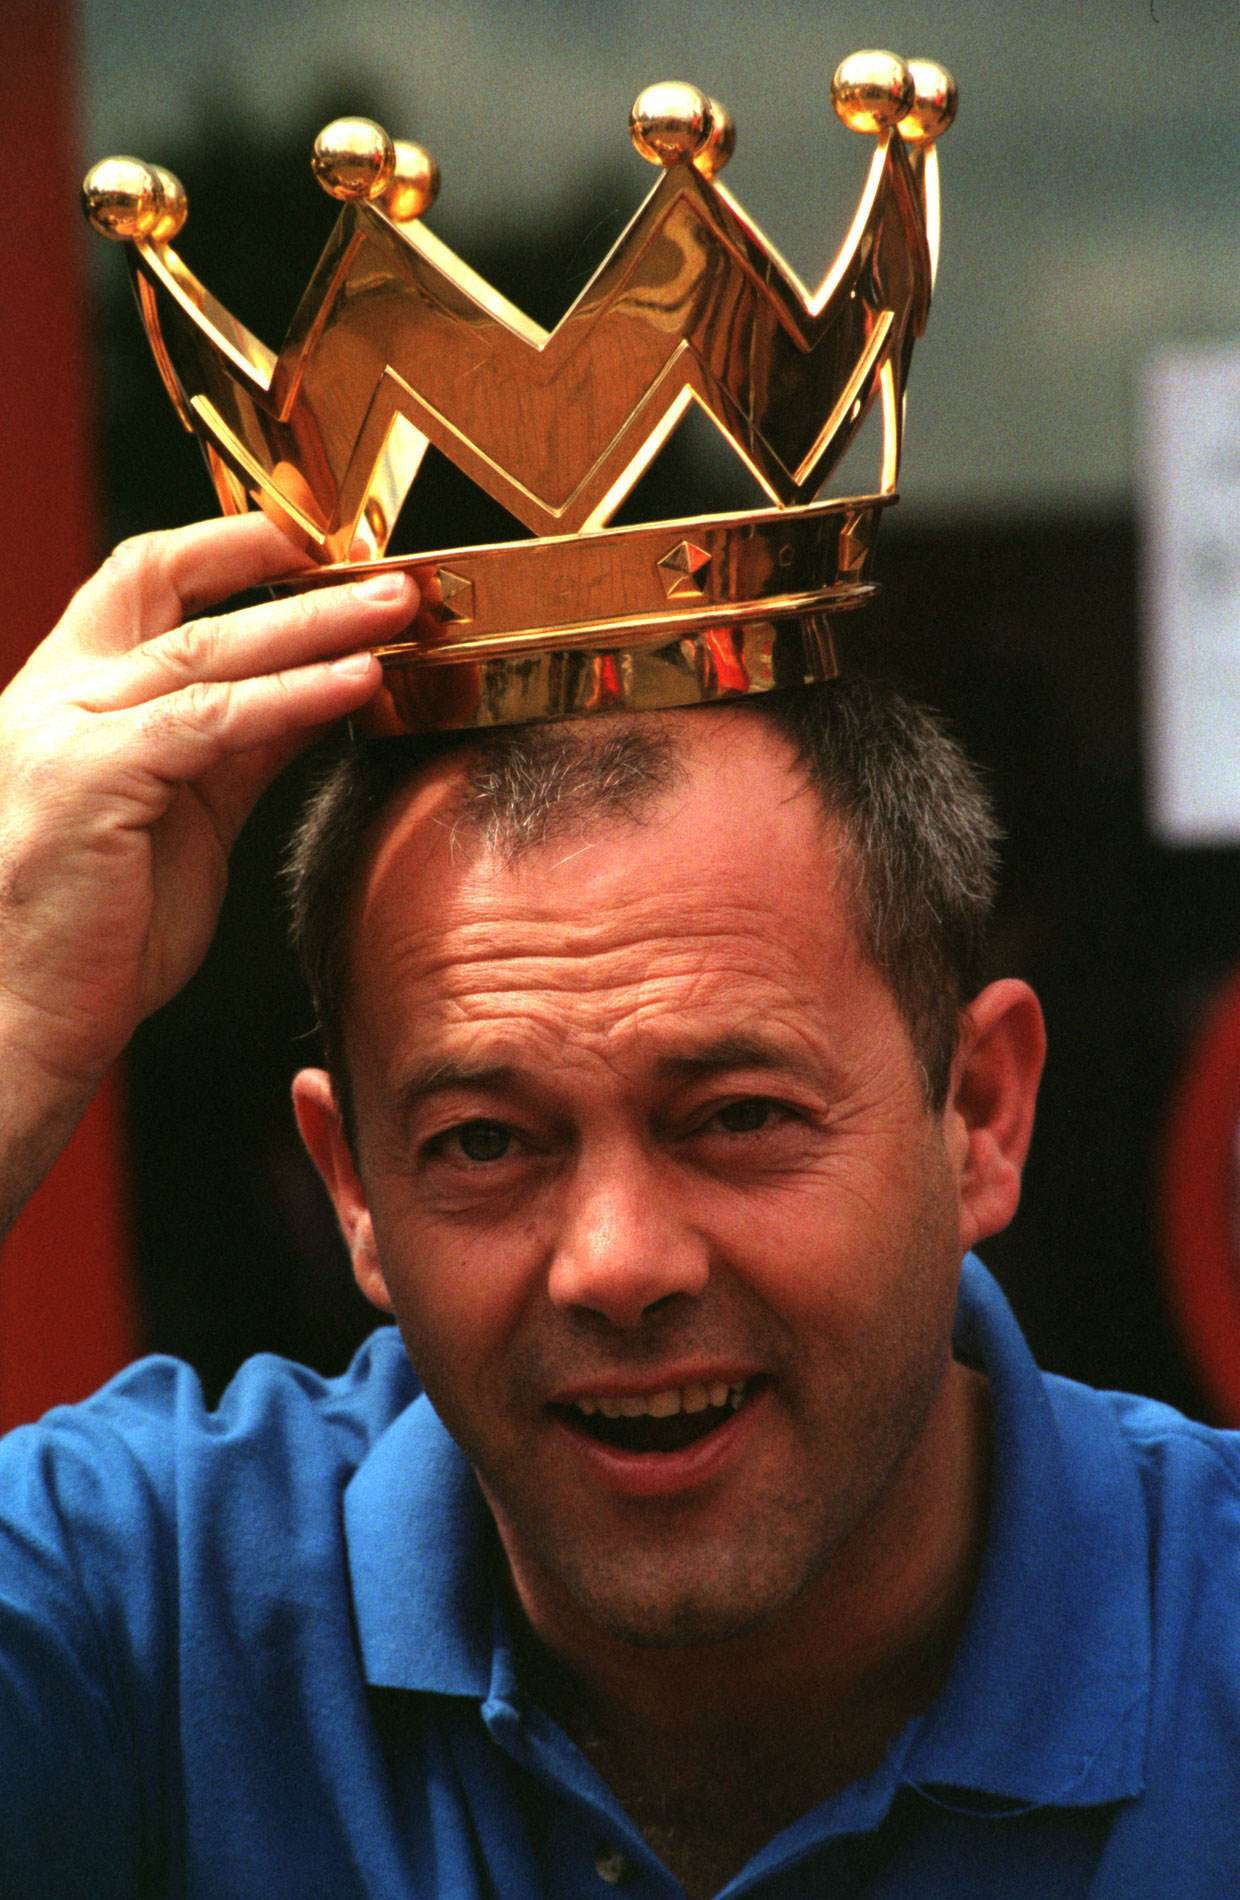 """PA NEWS PHOTO 31/5/98  COMEDIAN KEITH ALLEN POSES WITH THE LEAGUE TROPHY AT ARSENAL F.C.'S HIGHBURY GROUND IN LONDON FOR THE  """"FIFE 98"""" A CHARITY FOOTBALL TOURNAMENT ORGANISED BY THE BRITISH FILM INDUSTRY IN AID OF THE LORD MAYOR OF LONDON APPEAL"""